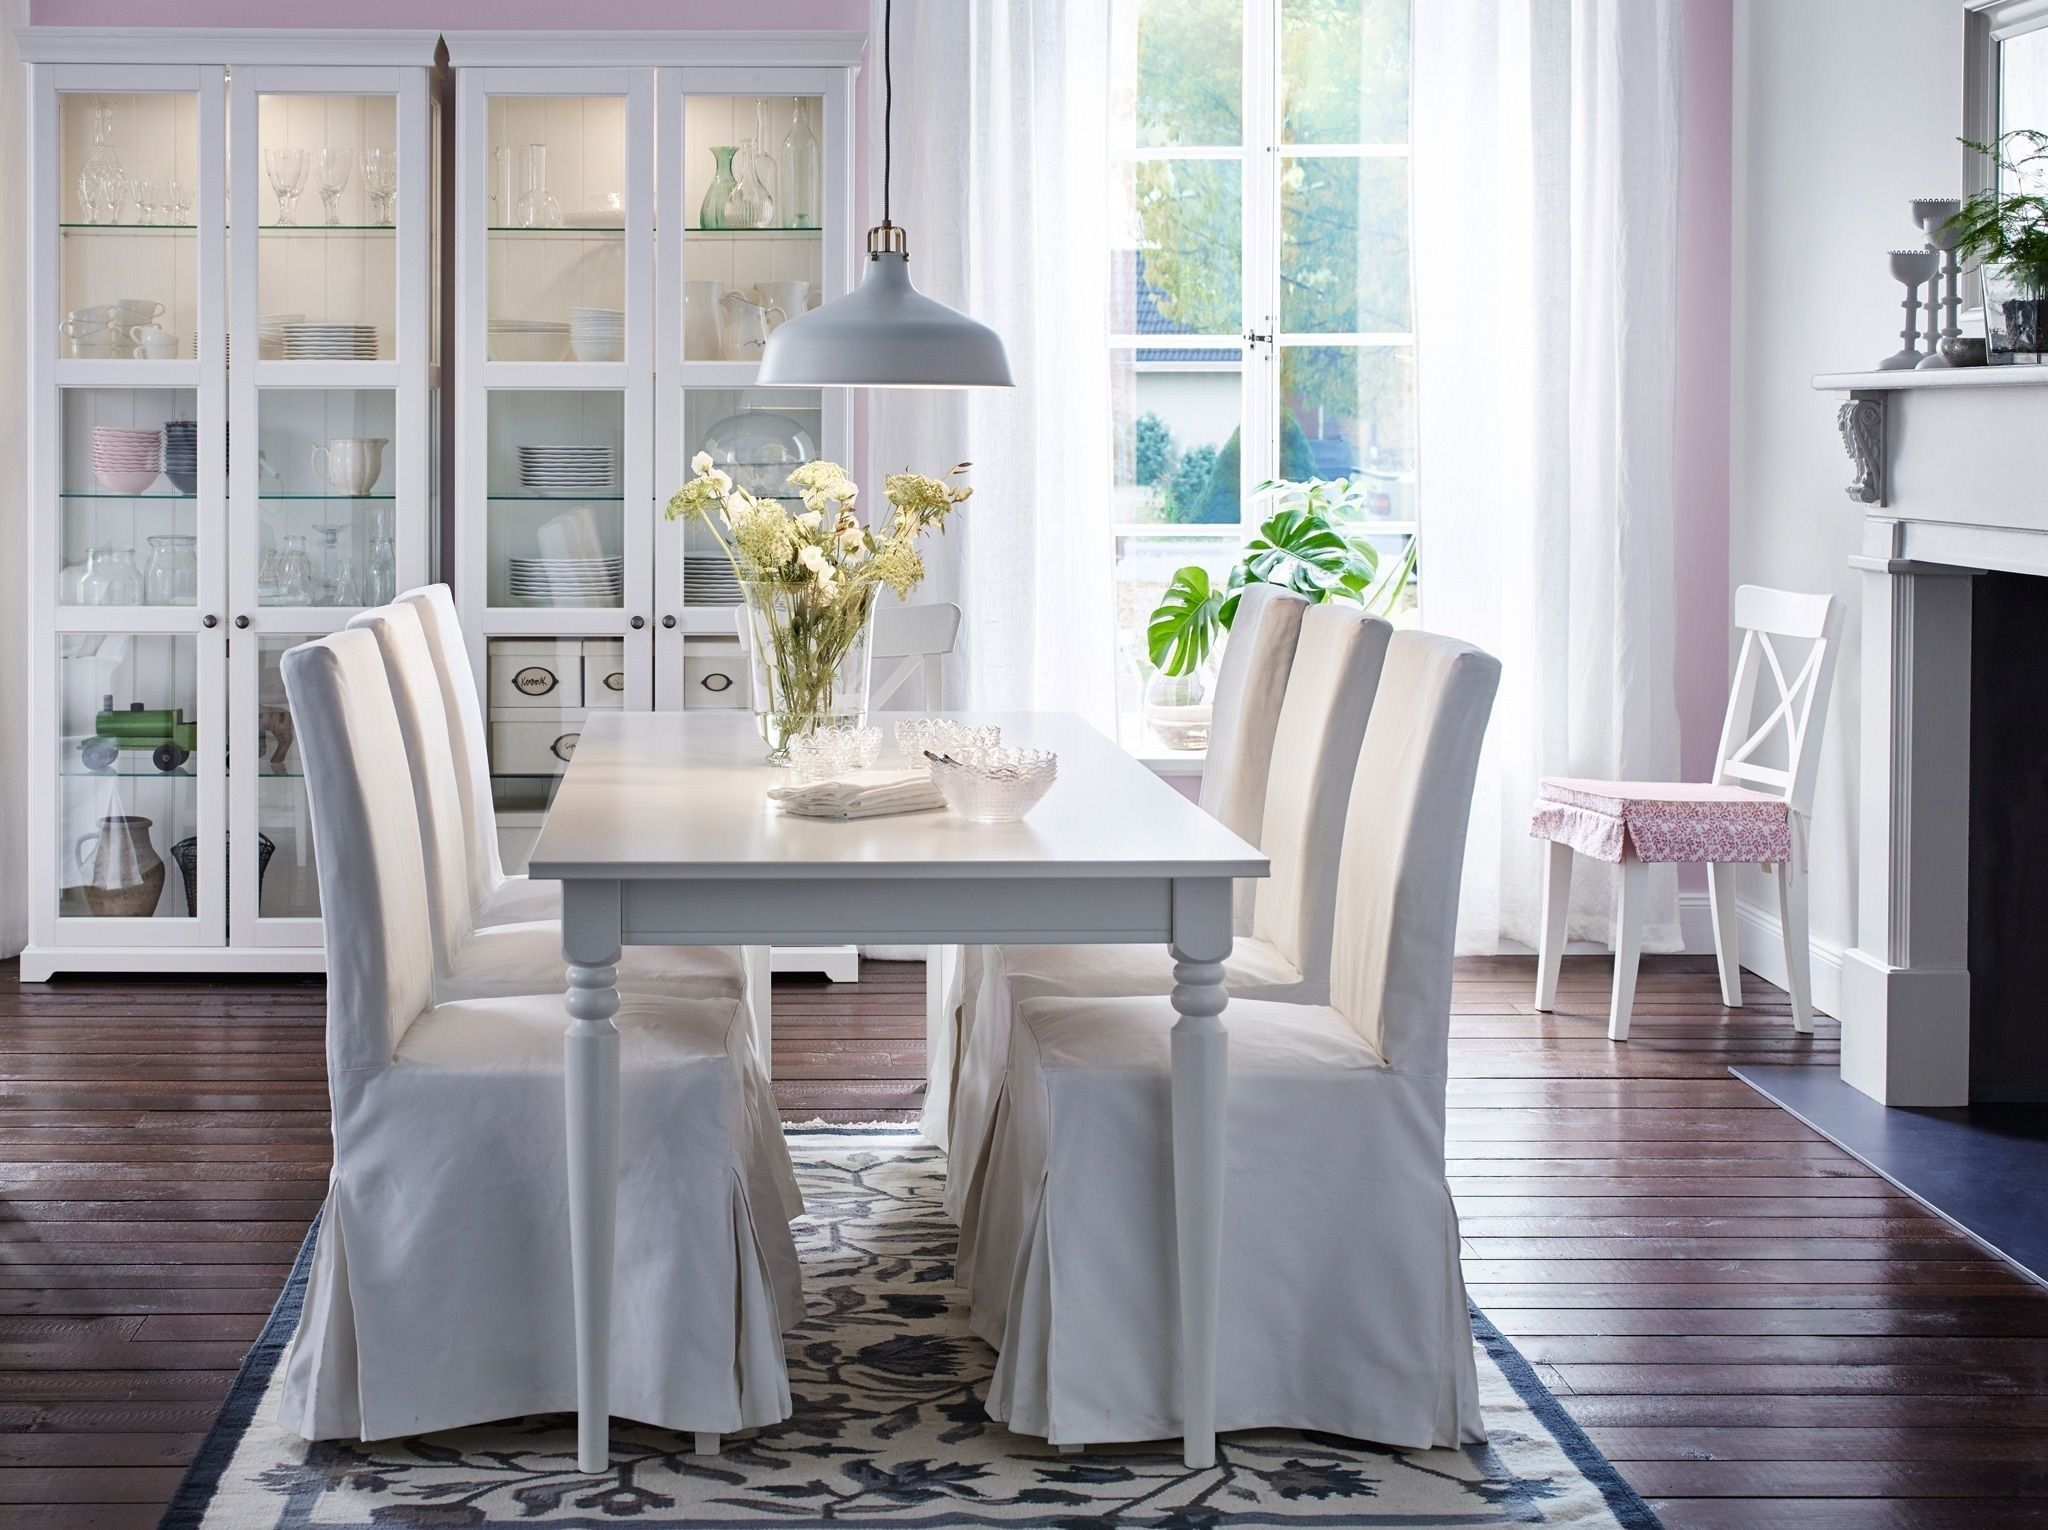 Table Salle A Manger Ikea With Images Ikea Dining Ikea Dining